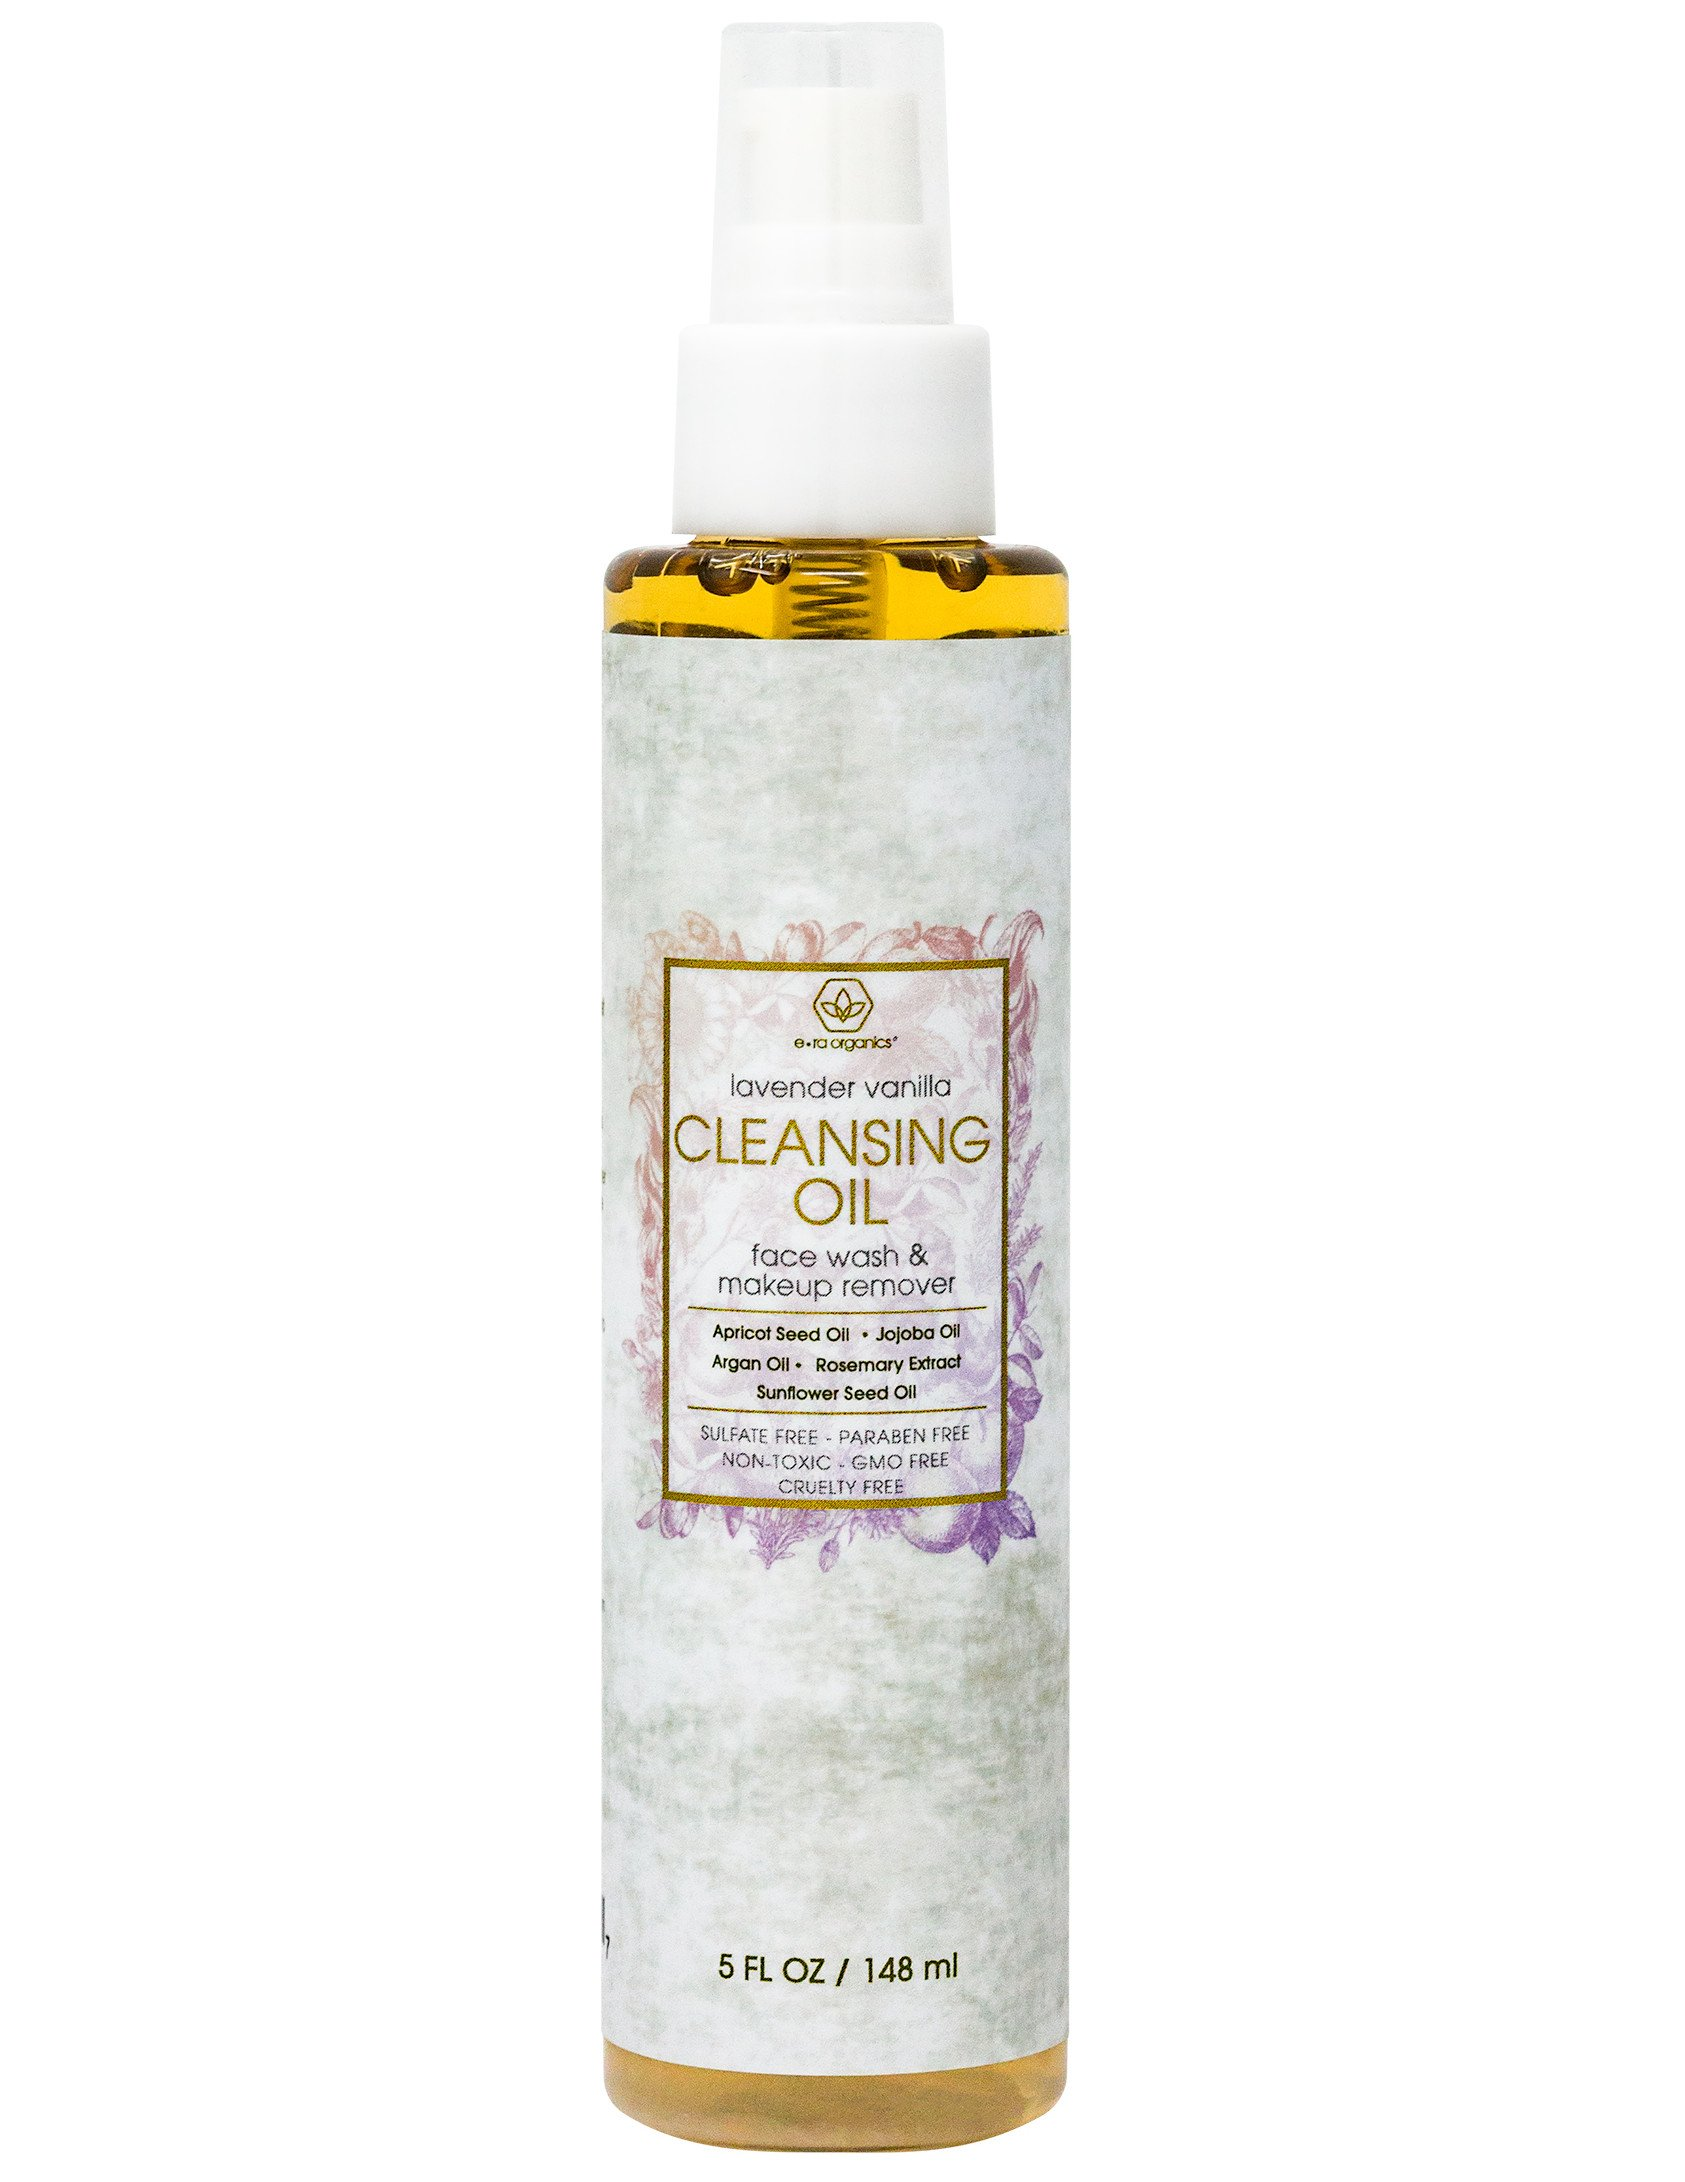 Facial Cleansing Oil & Makeup Remover- Premium Natural & Organic Moisturizing Face Wash For Dry